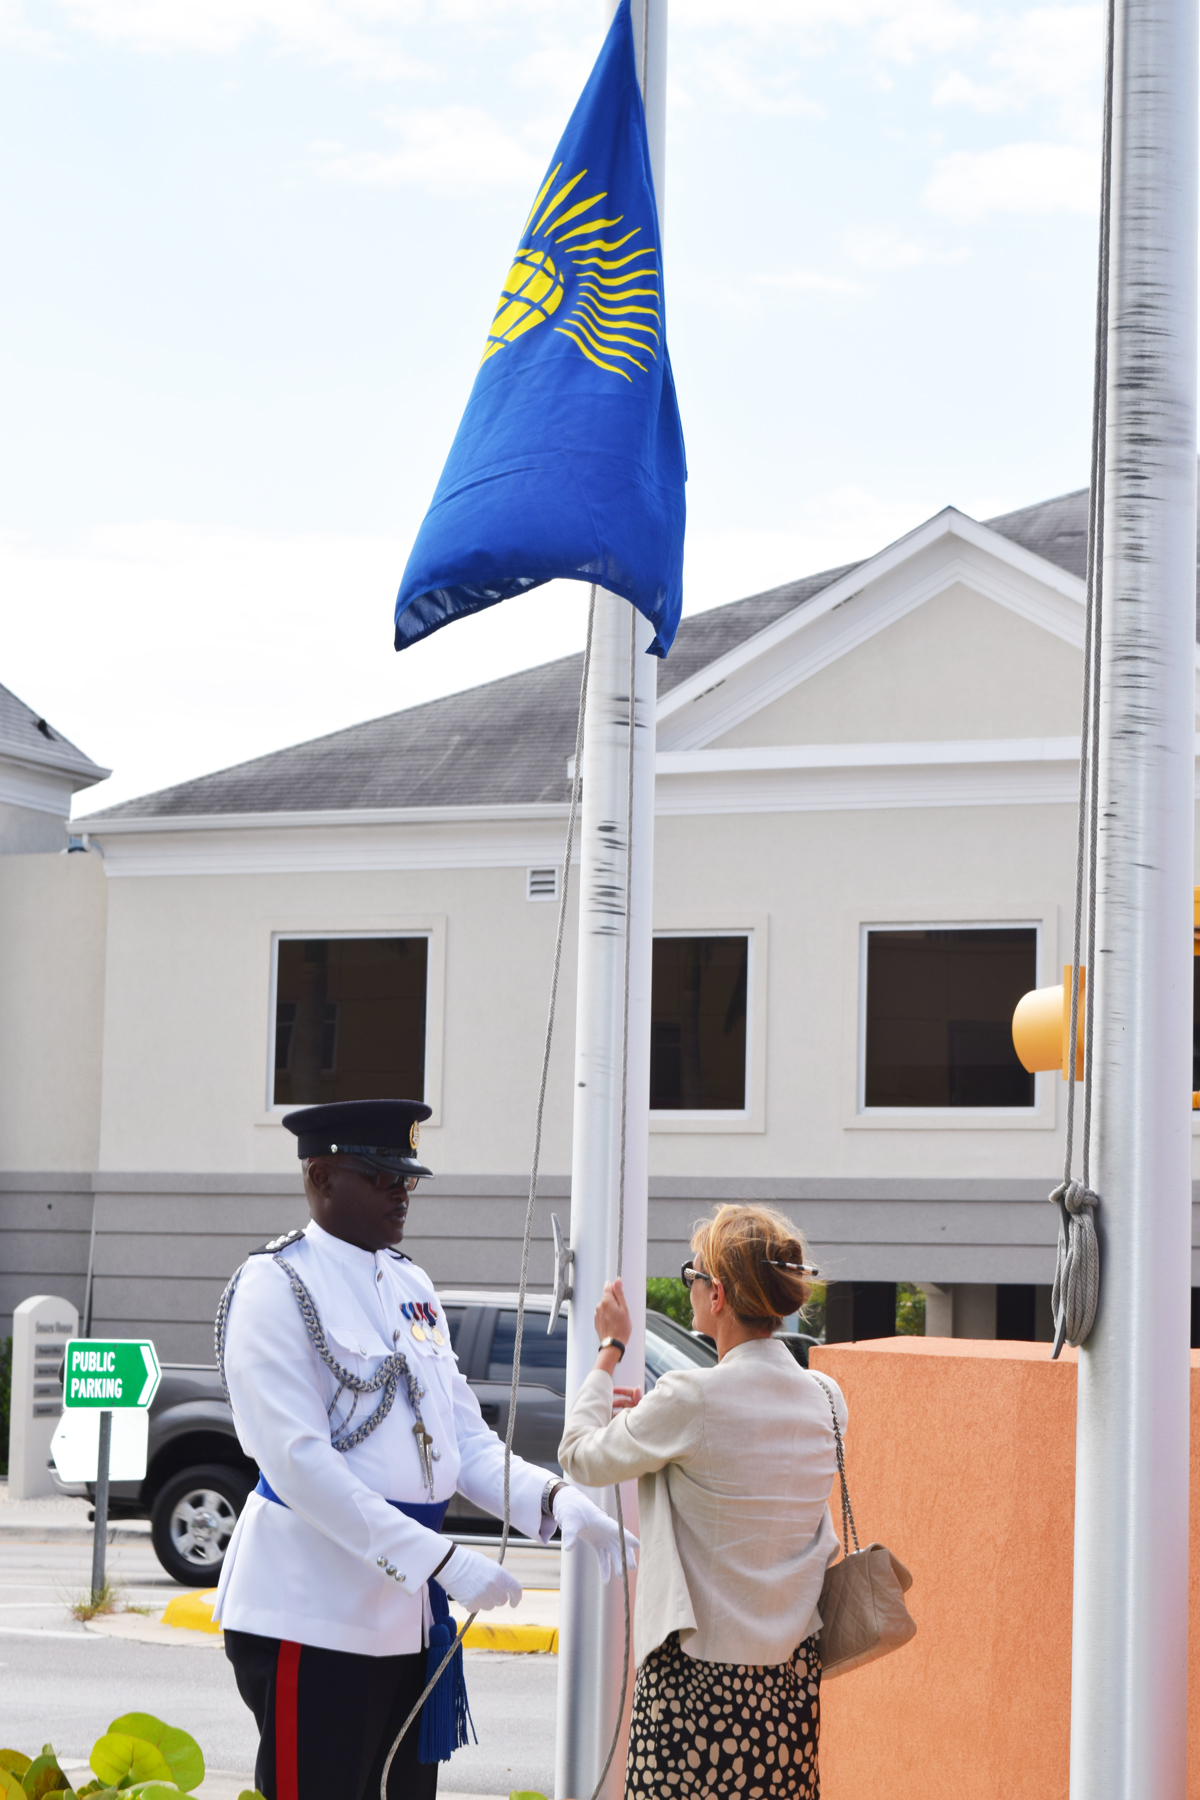 Her Excellency, Governor Helen Kilpatrick raises the Commonwealth Flag